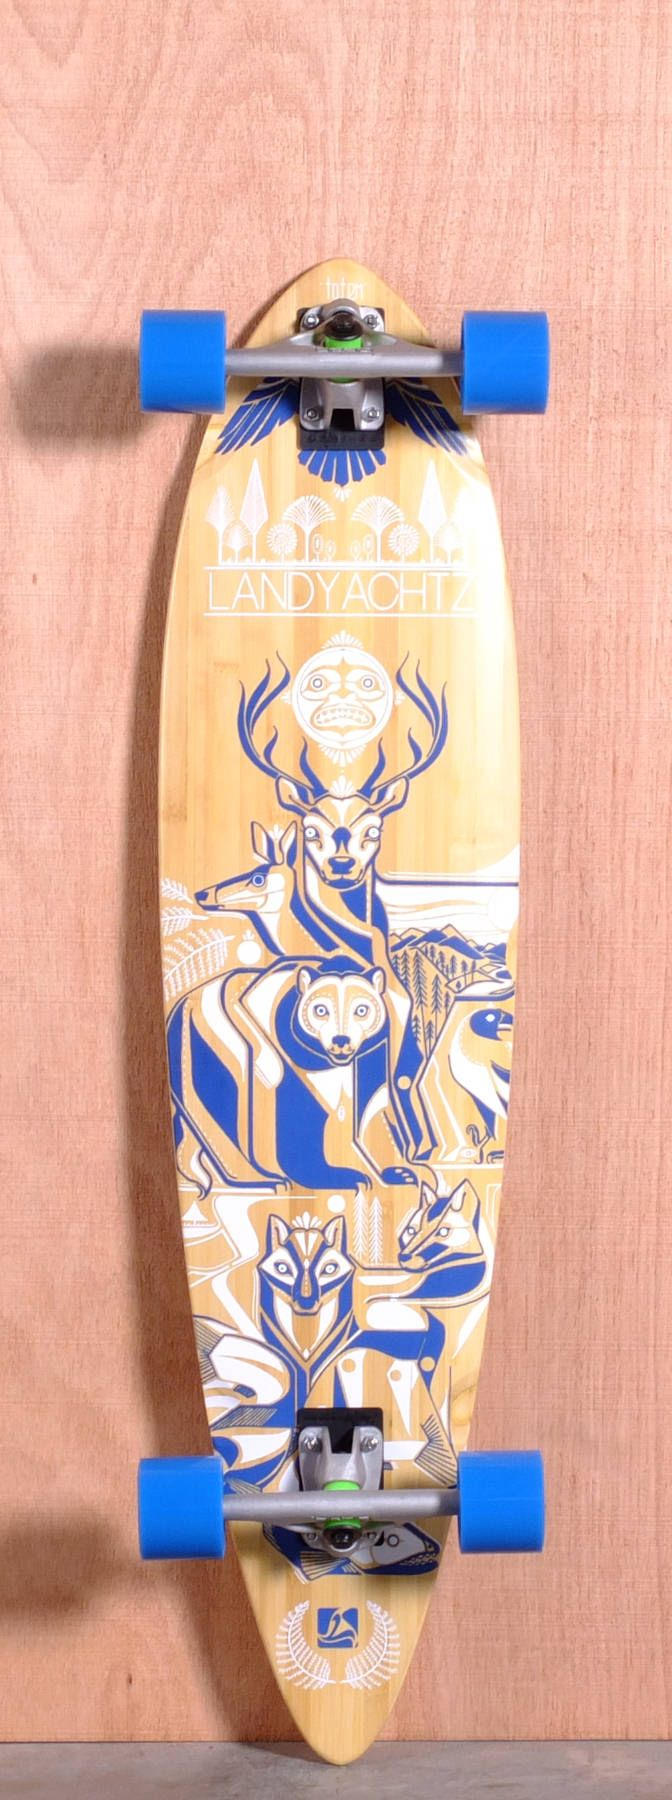 """The Landyachtz Fiberglass Totem Longboard Complete is designed for Cruising and Carving. Ships fully assembled and ready to skate!  Function: Cruising, Carving  Features: Medium W Concave, Rocker, Wheel Wells  Material: 5 Ply Vertically Laminated Bamboo, Fiberglass Core  Length: 41""""  Width: 9.9""""  Wheelbase: 27.75""""  Thickness: 1/2""""  Hole Pattern: Old School  Grip: Clear"""